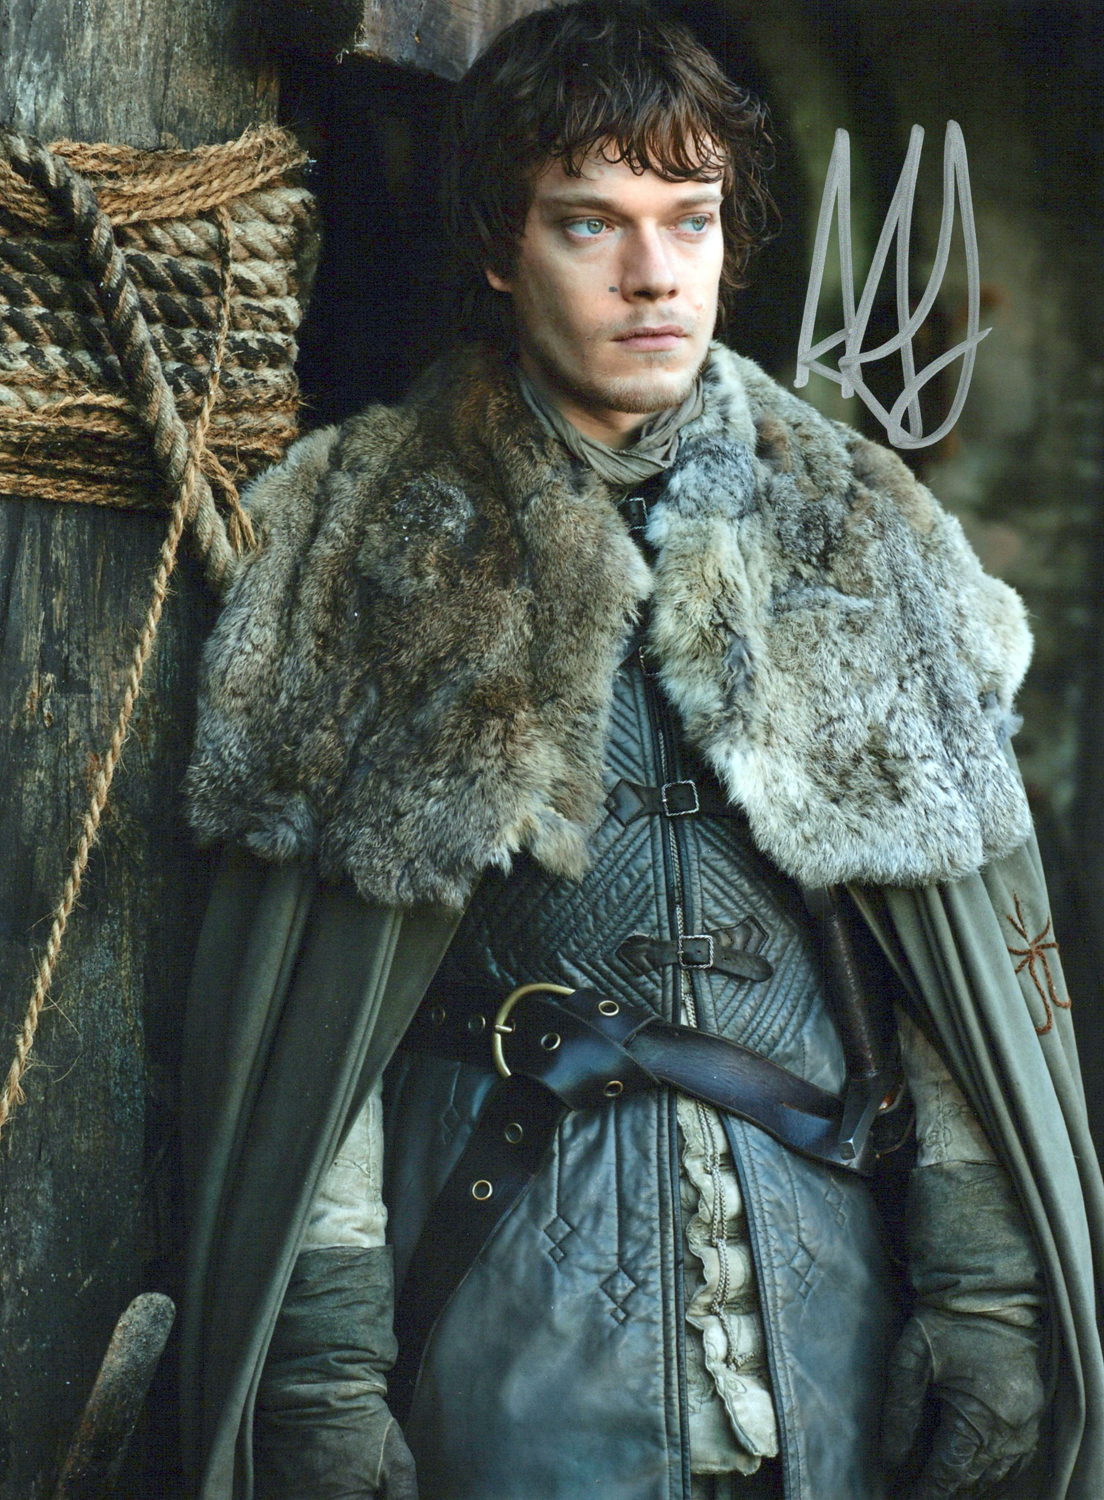 Alfie Allen Original Autogramm auf Foto 20x25cm - Game of Thrones